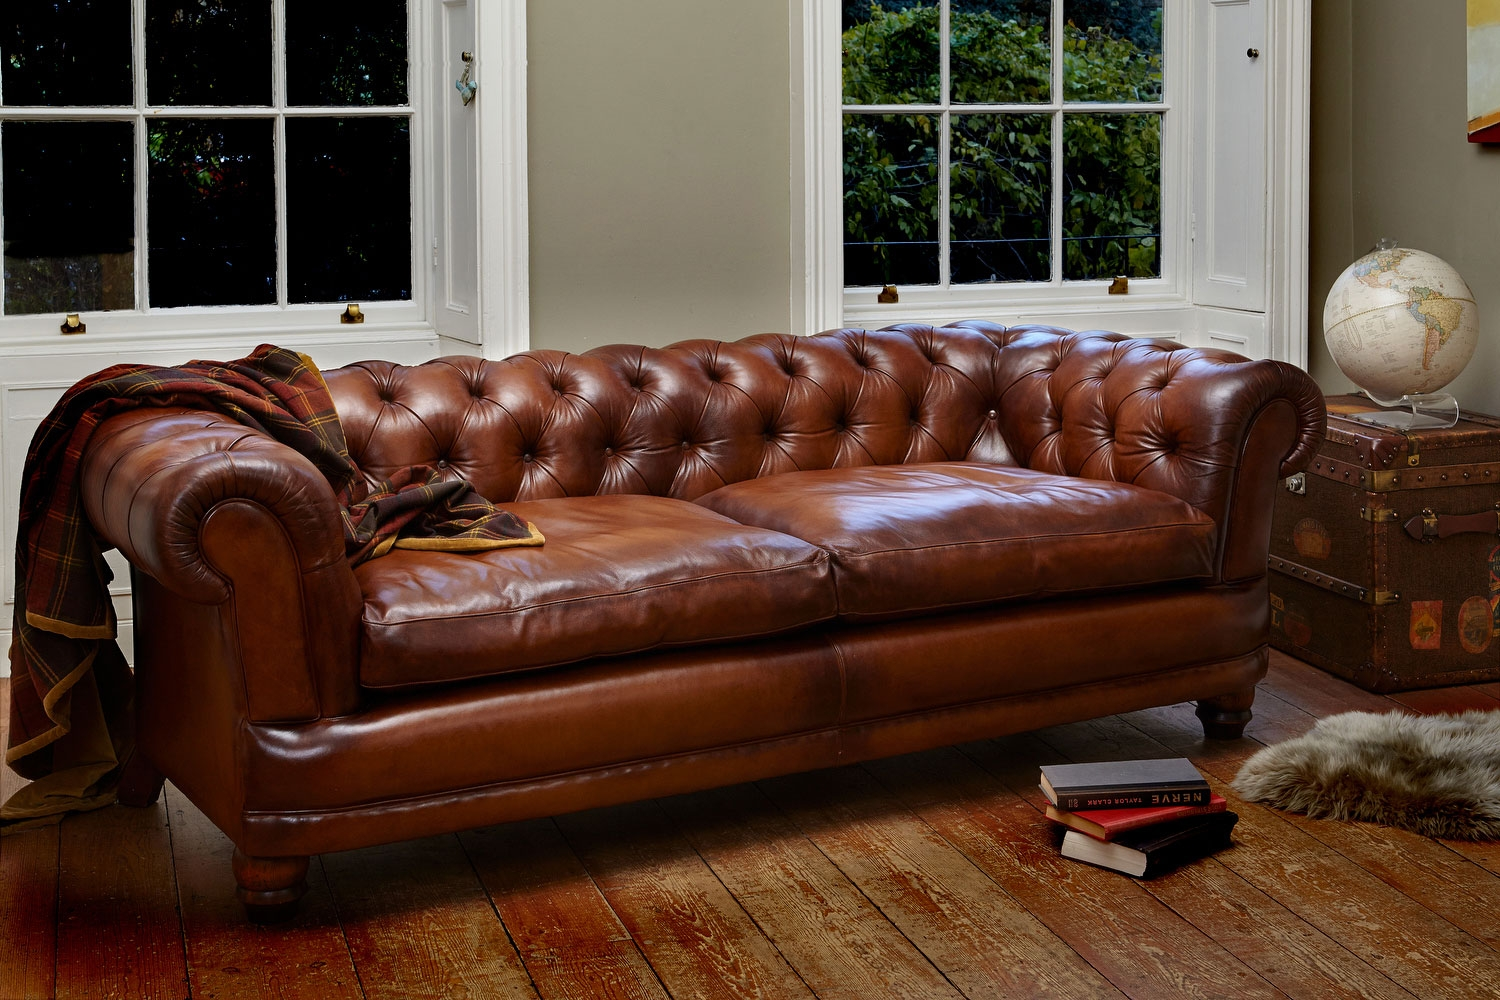 Chesterfield Sofa History Hmmi Intended For Small Chesterfield Sofas (Image 4 of 15)